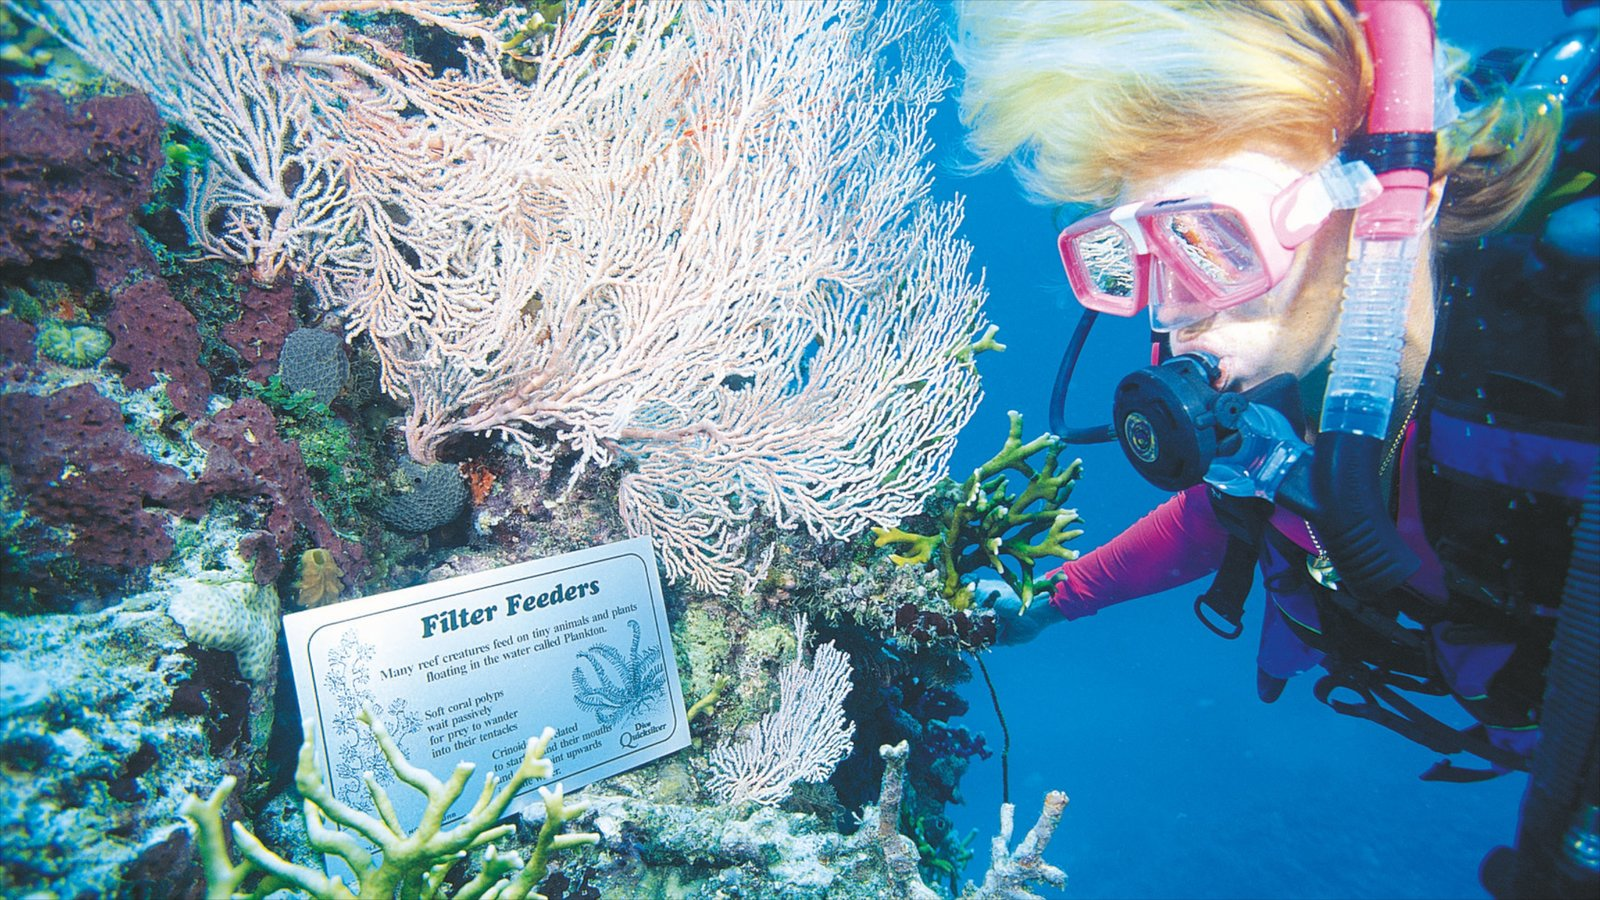 Port Douglas showing diving, colorful reefs and signage